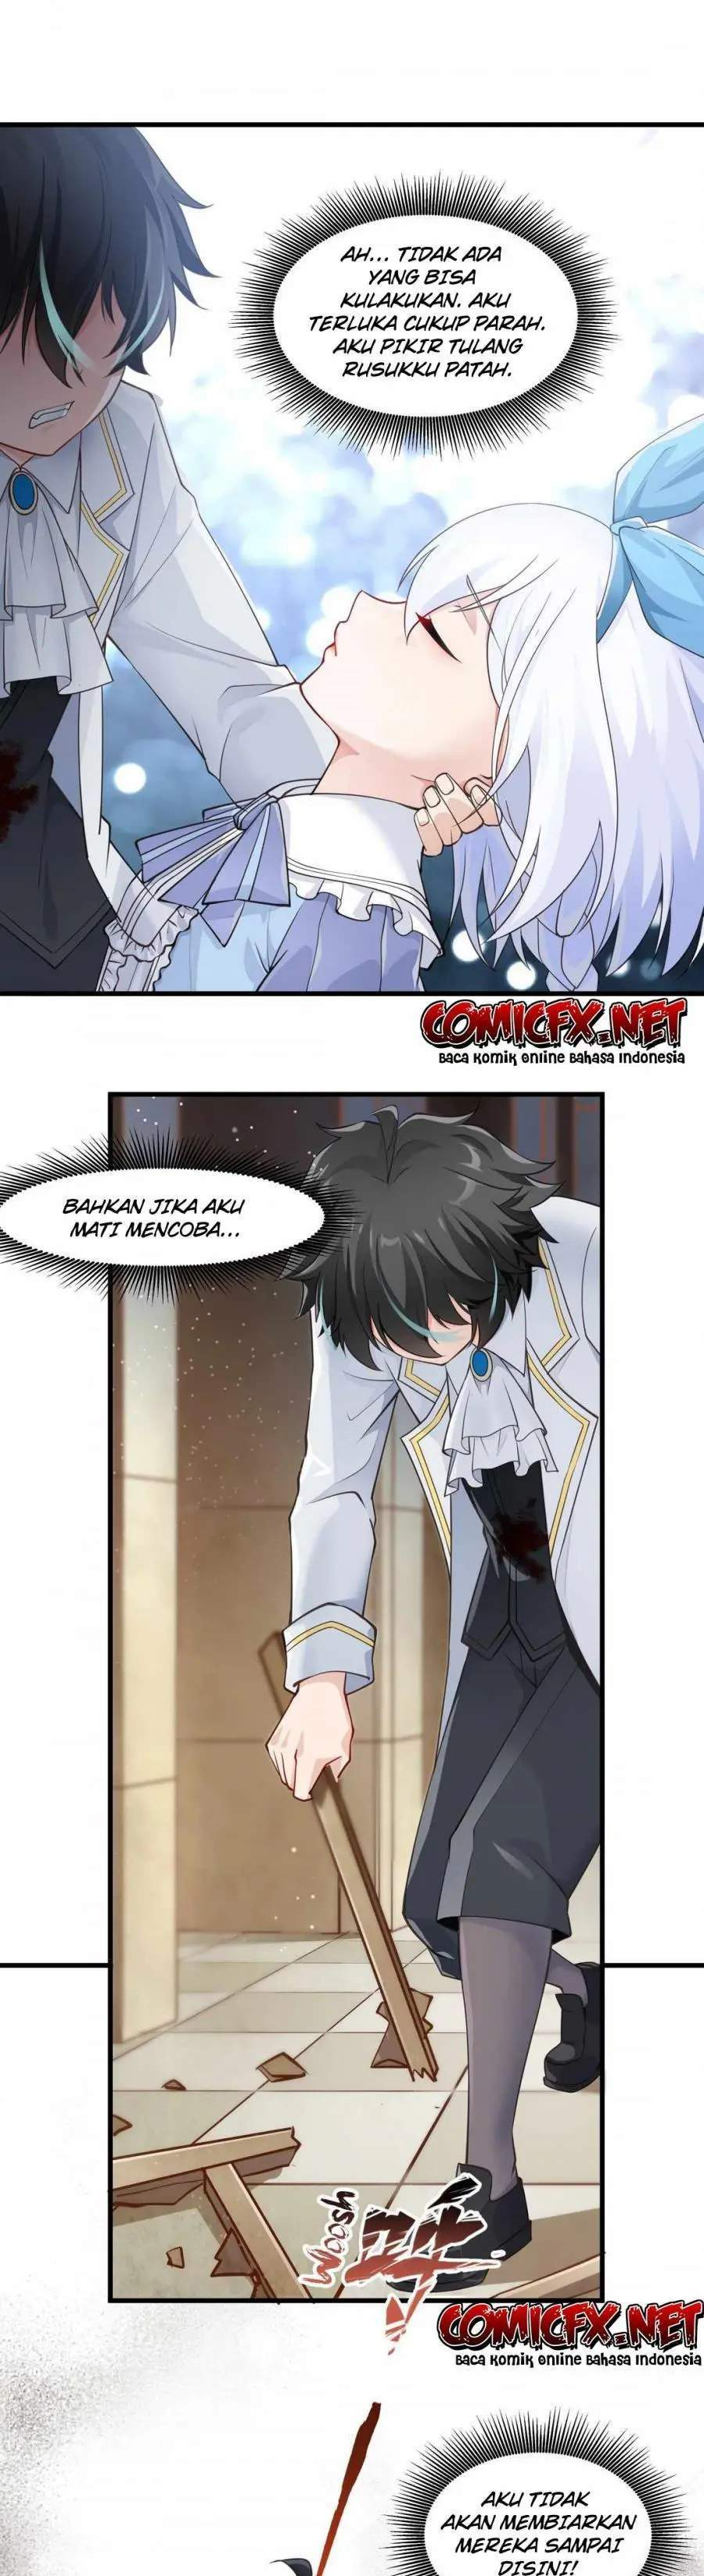 Little Tyrant Doesn't Want to Meet with a Bad End Chapter 09